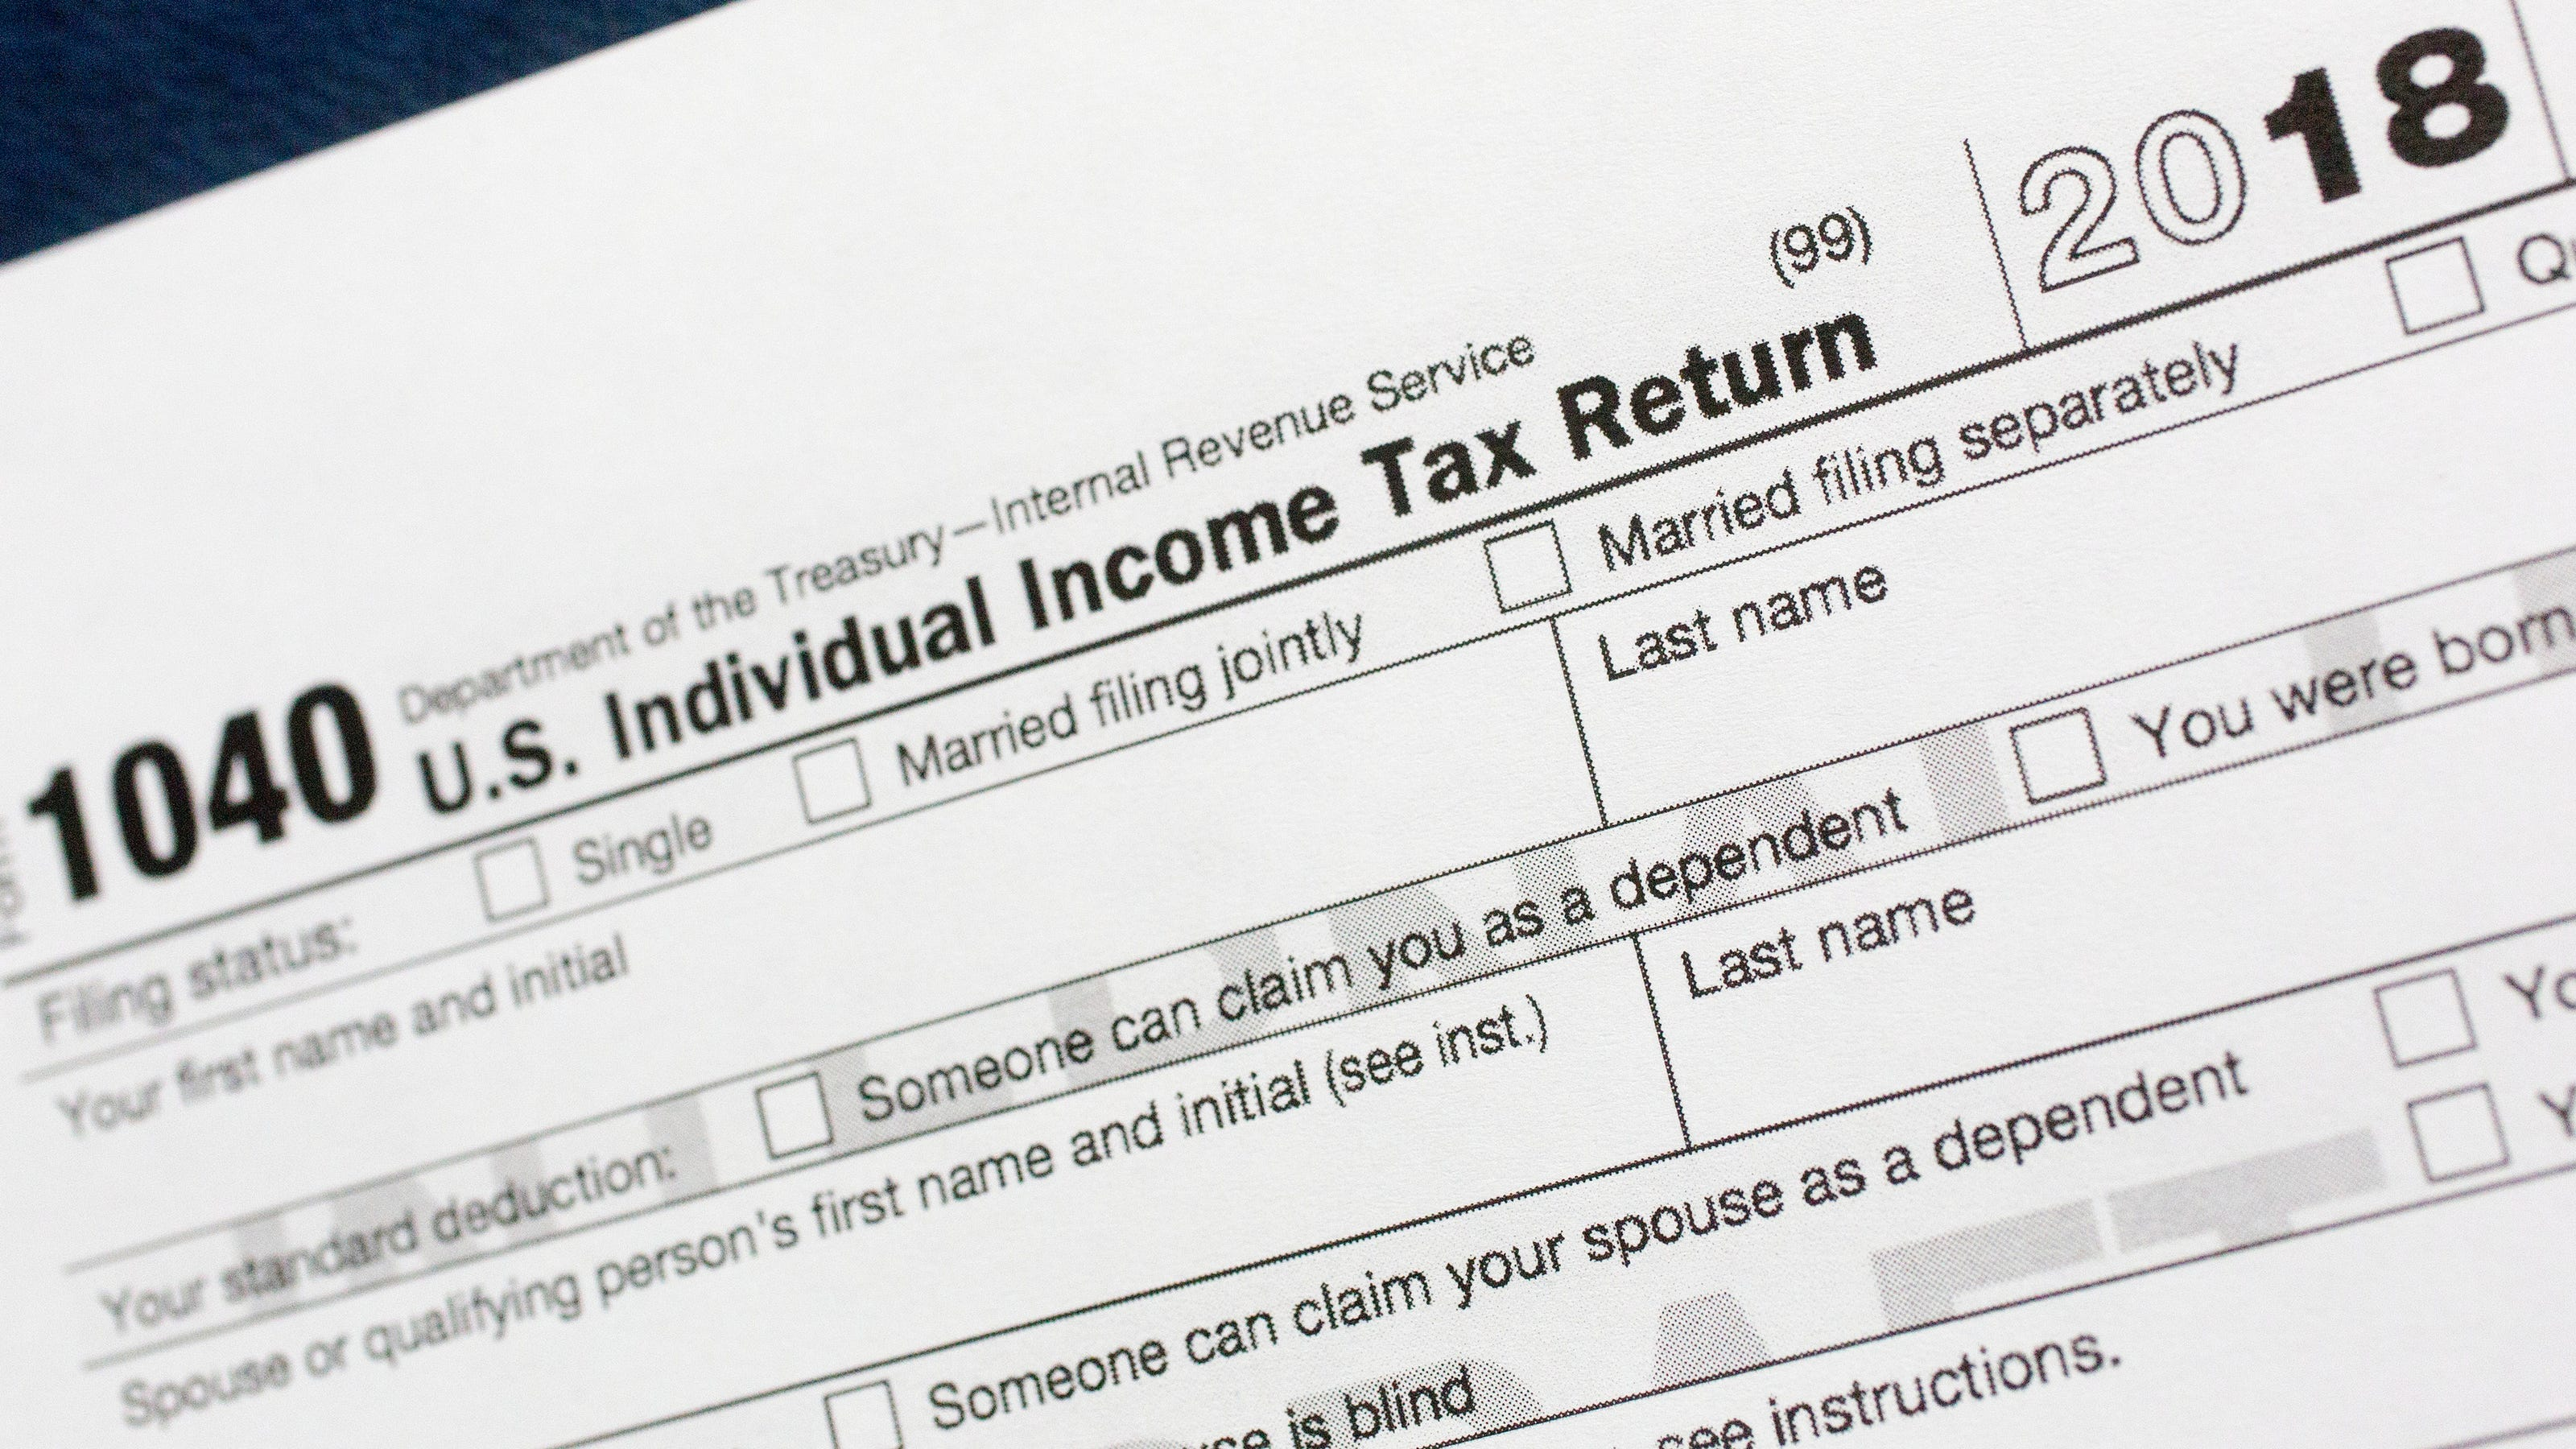 Taxes 2020 Irs To Delay April 15 Tax Filing Deadline To July 15